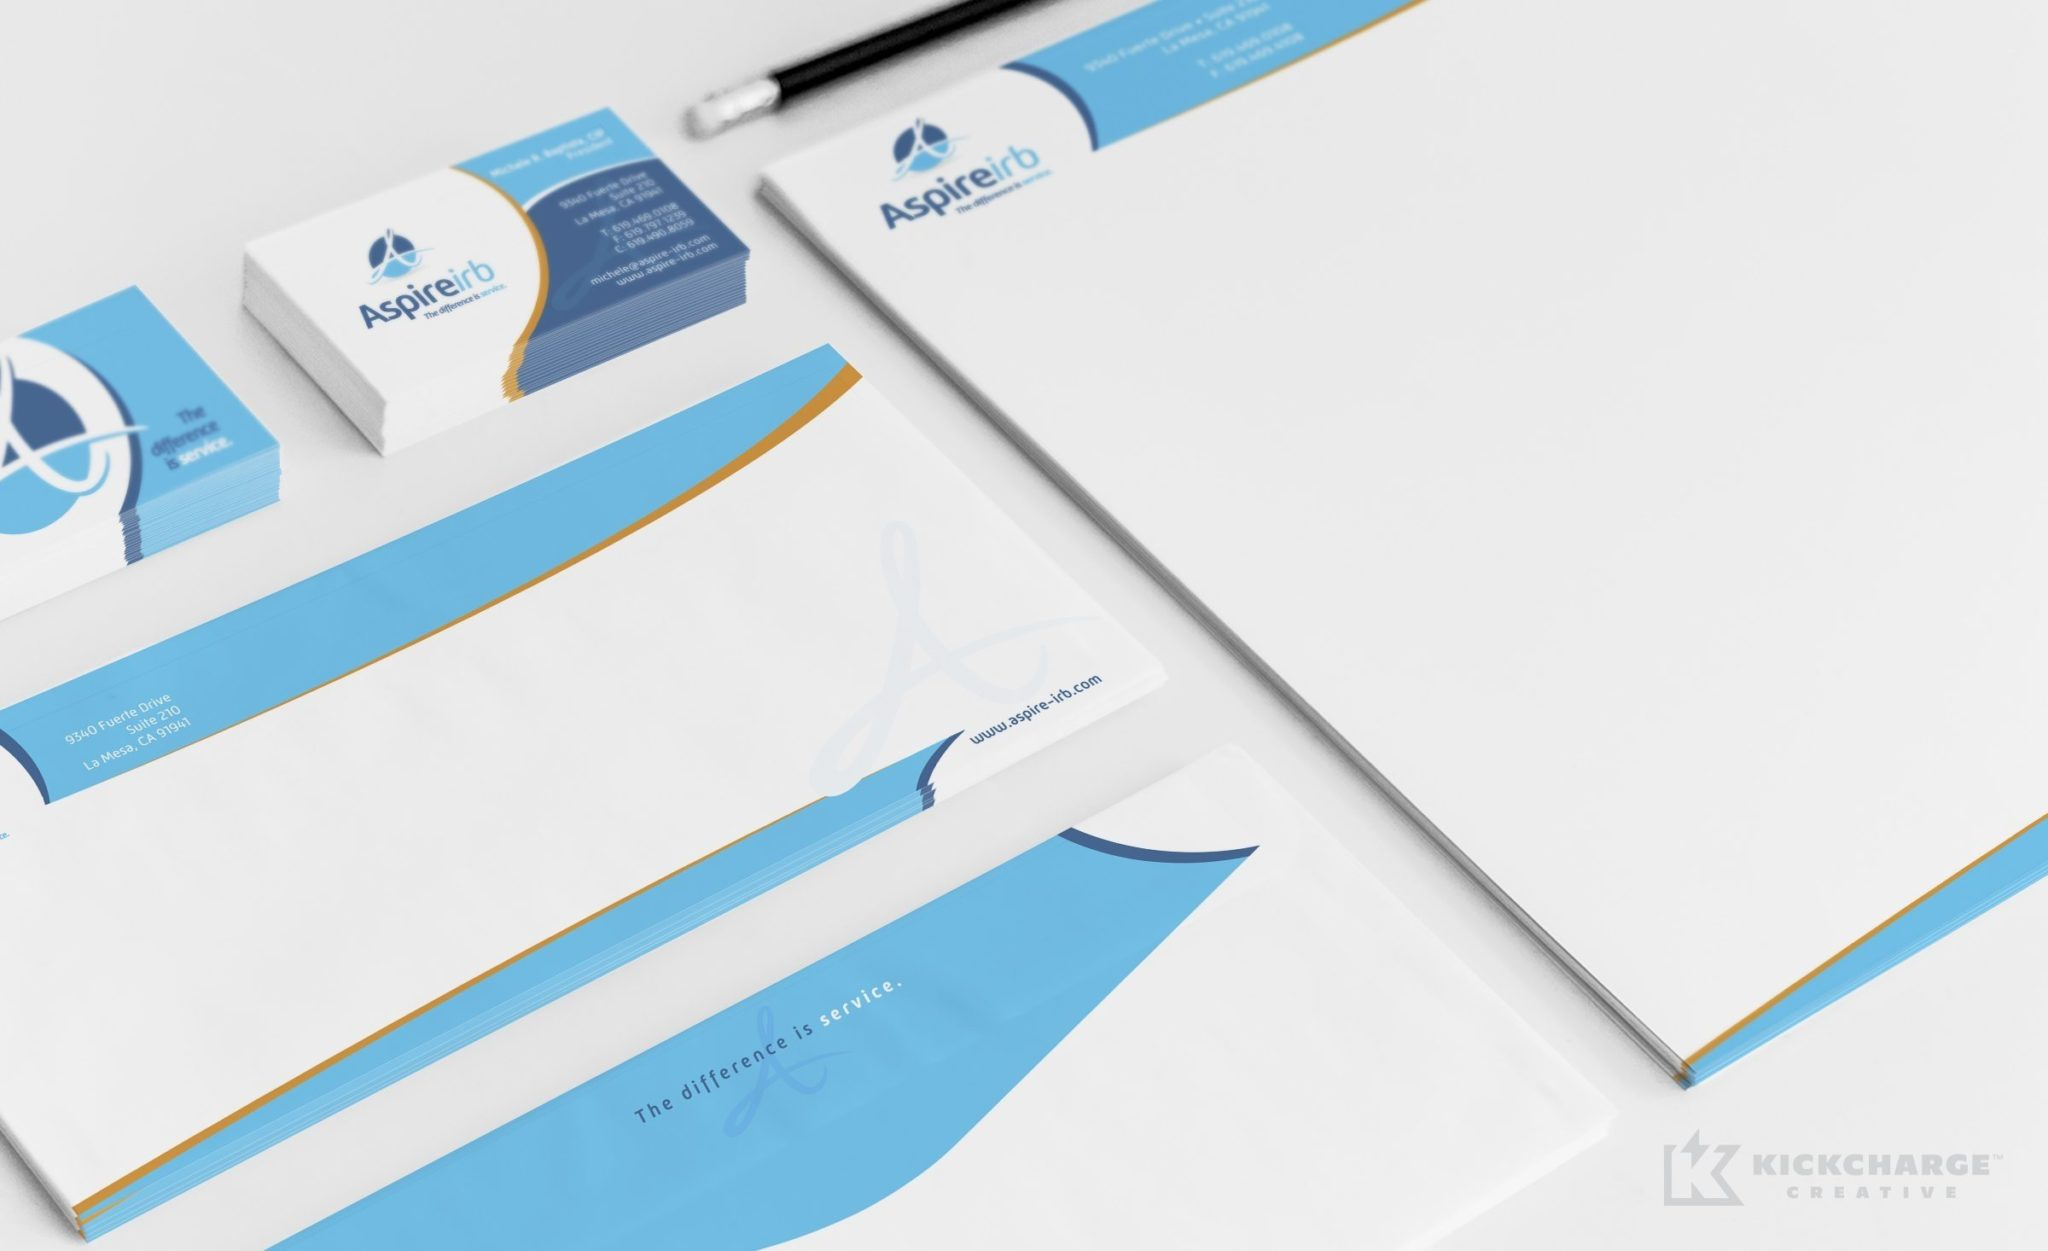 Collateral and stationery design for a company in La Mesa, California that promotes research in healthcare.